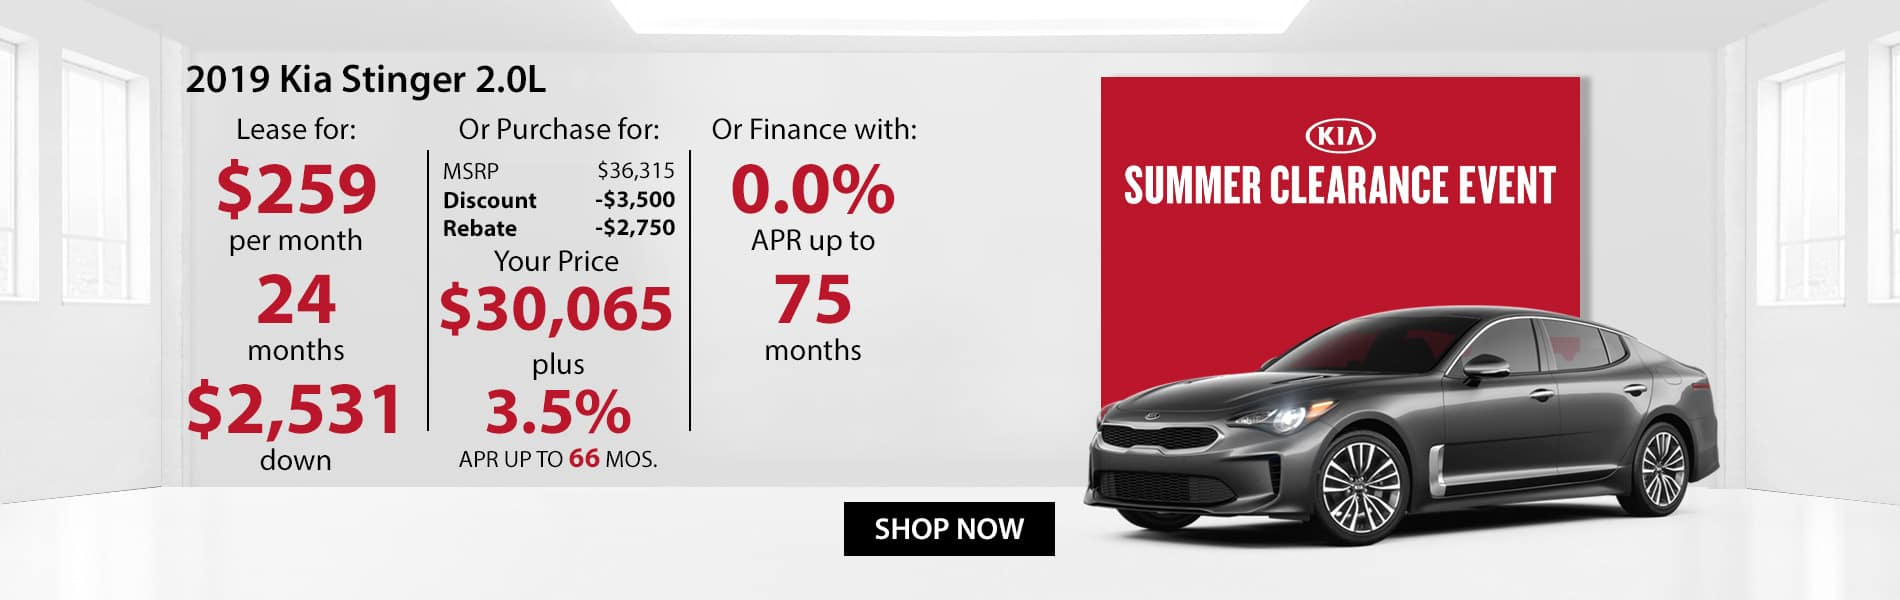 Special offer on 2019 Kia Stinger 2.0L Lease for $259 or Purchase for $30,065 with 3.5% APR or get 0% APR for 75 months.